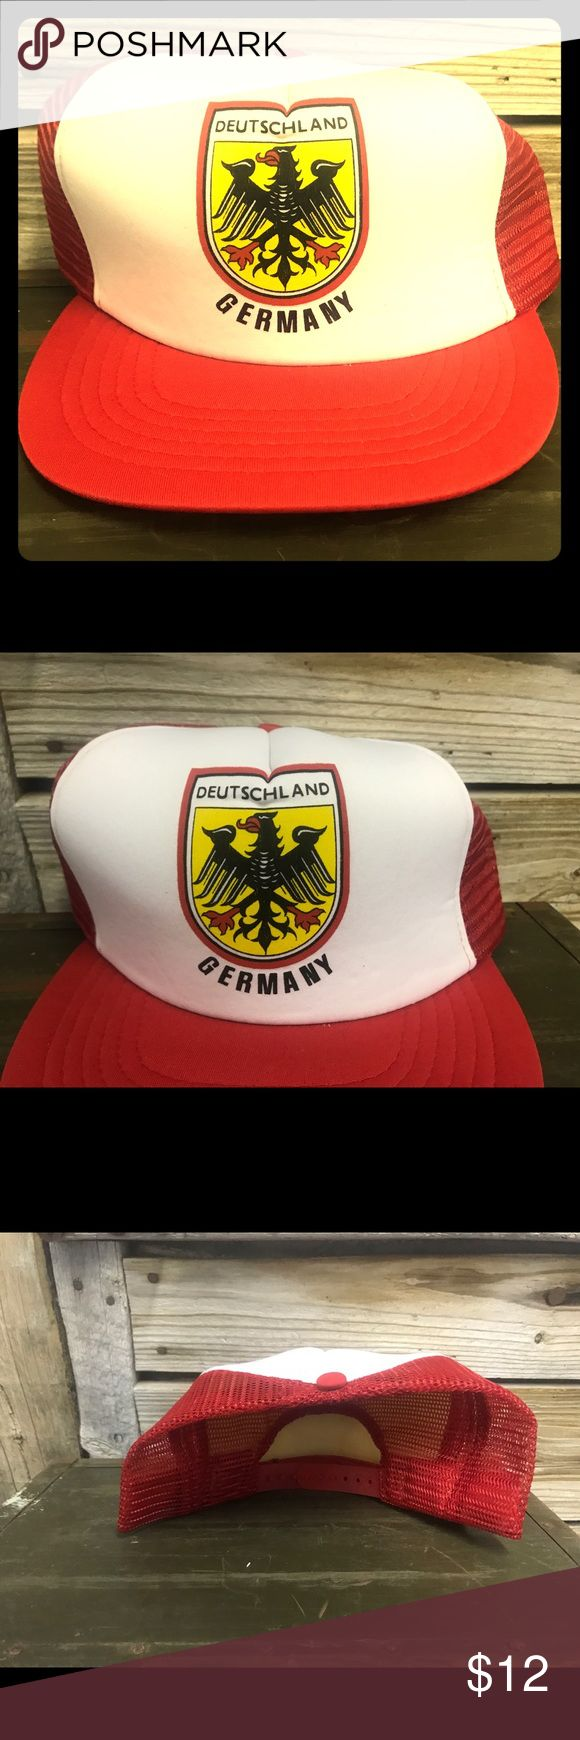 Vintage Deutschland Germany snapback trucker hat Red yellow and white 1980s vintage trucker hat Very minimal wear One size fits most adults Ships quickly Other